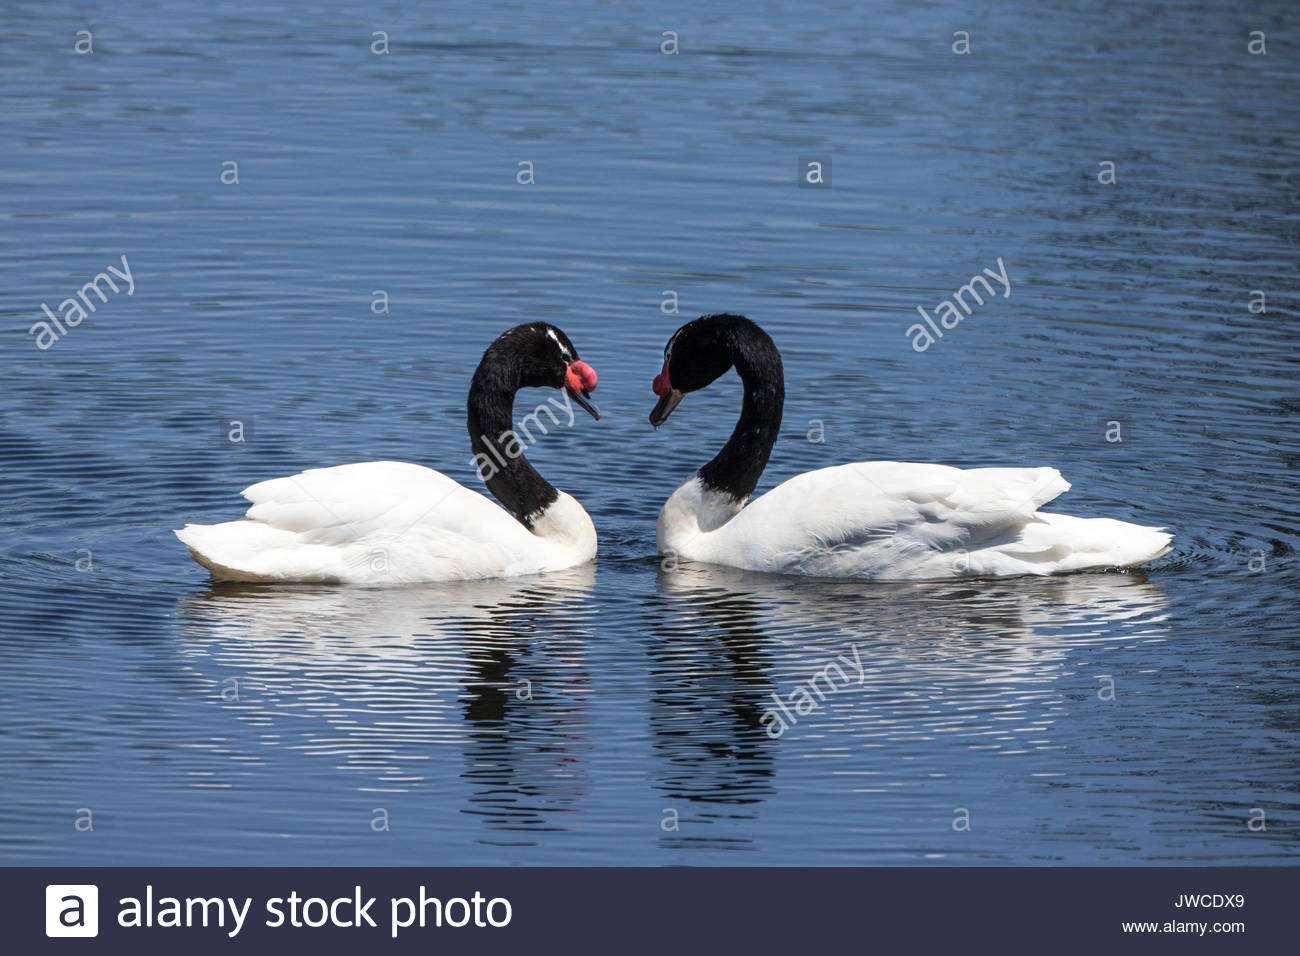 Two black-necked swans,Cygnus melancoryphus,meet face to face. - Stock Image